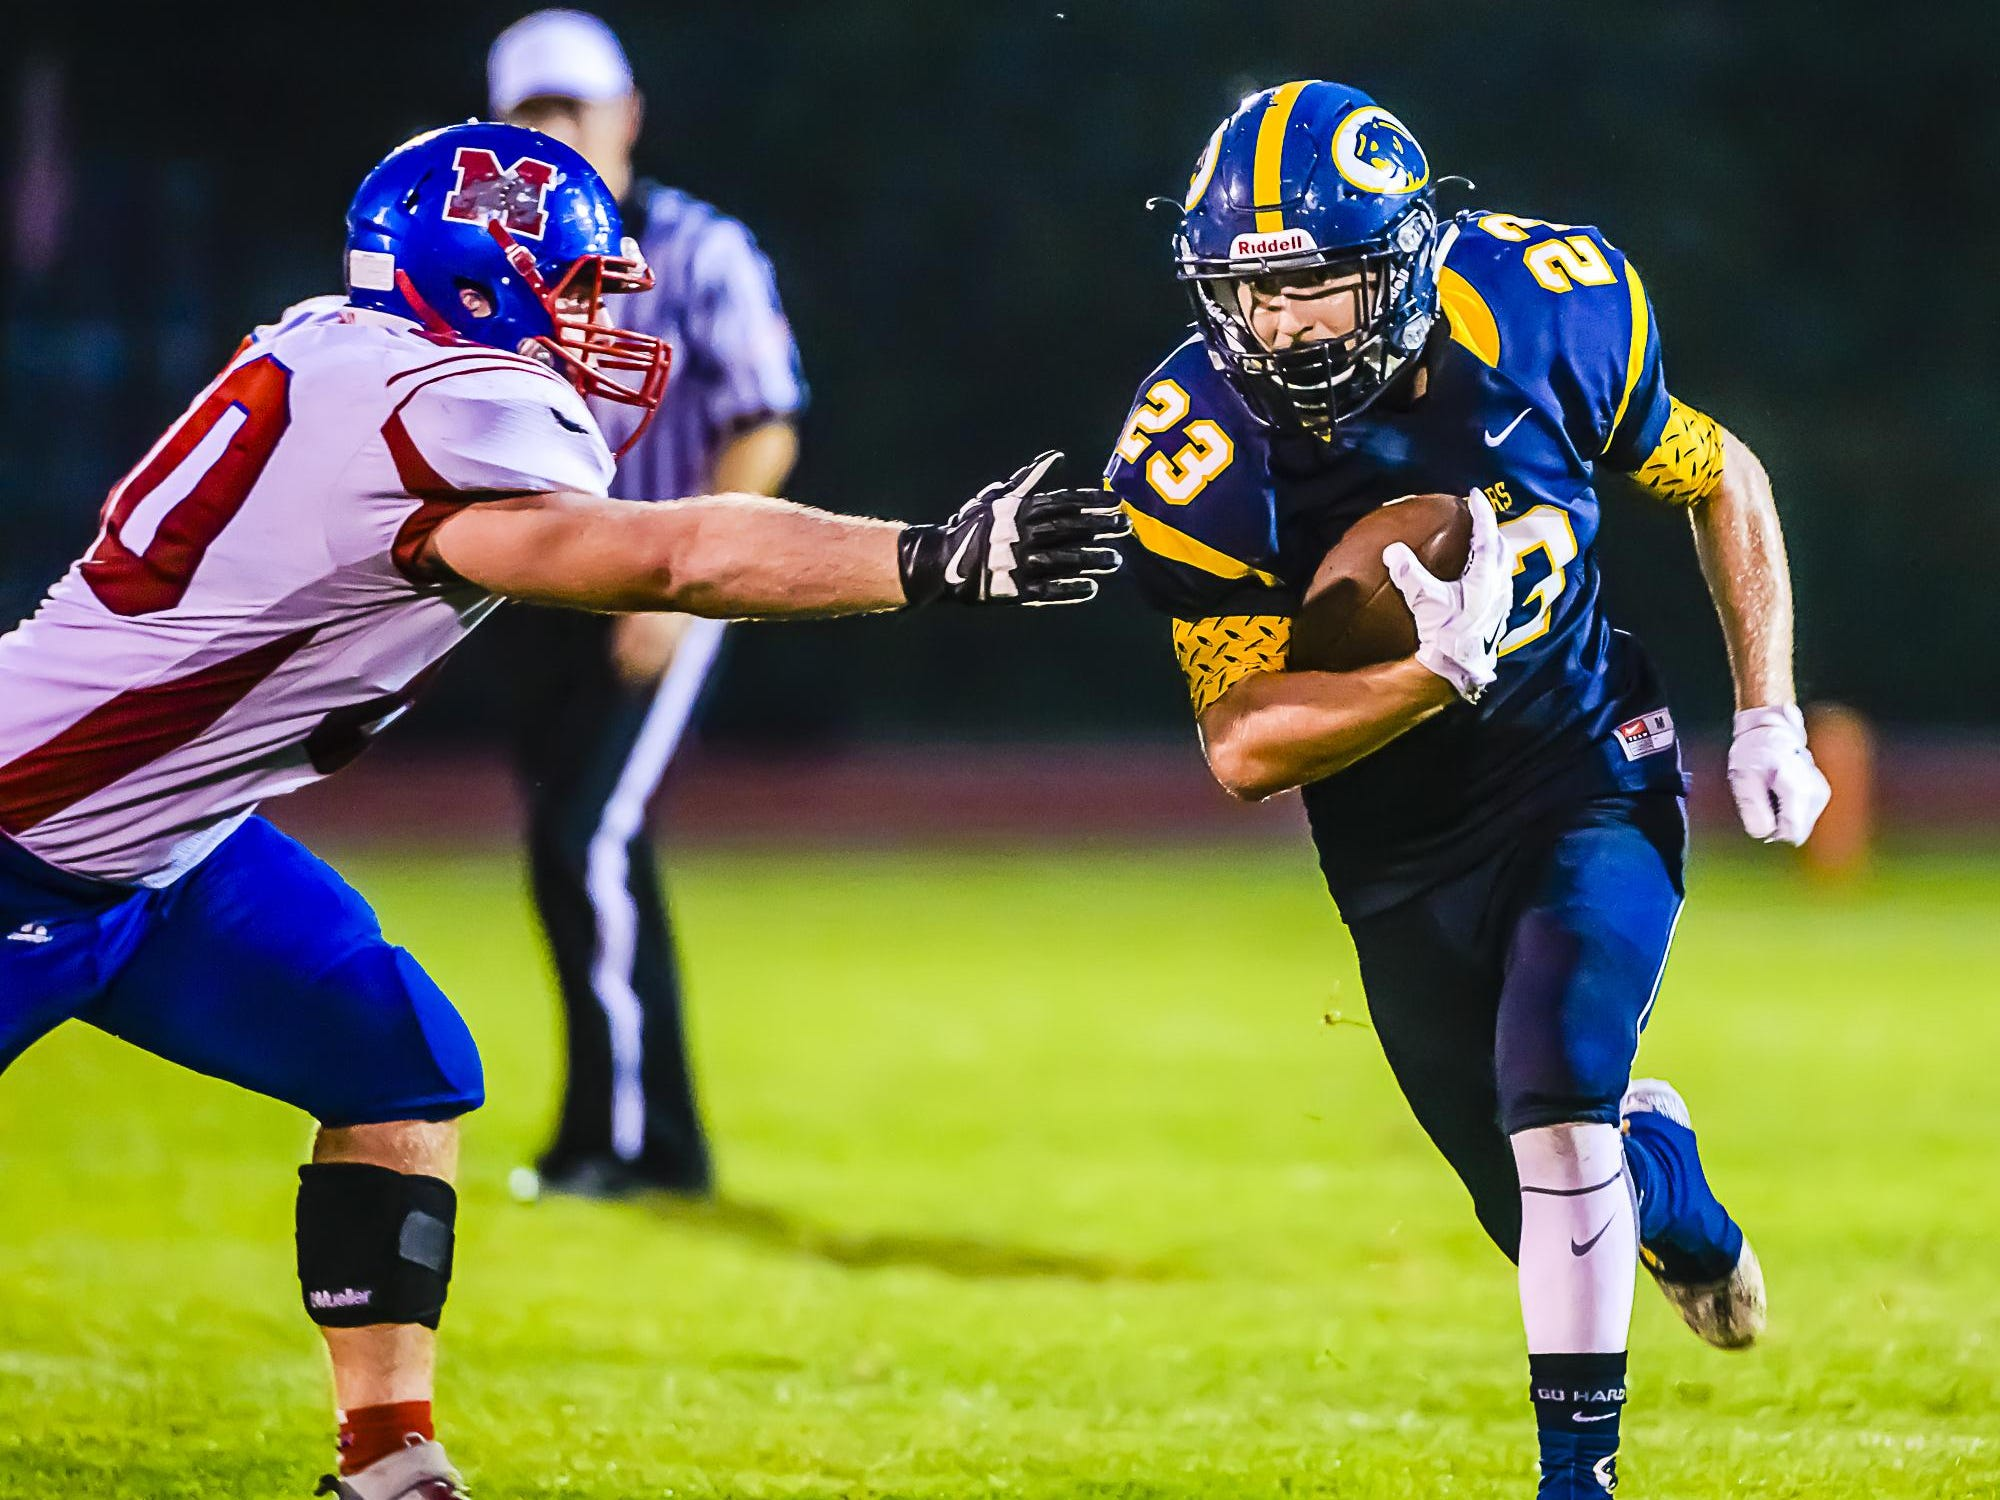 JD Ross, right, of DeWitt runs past a Mason defender for a first down late in the second quarter of their game Sept. 18 in DeWitt.